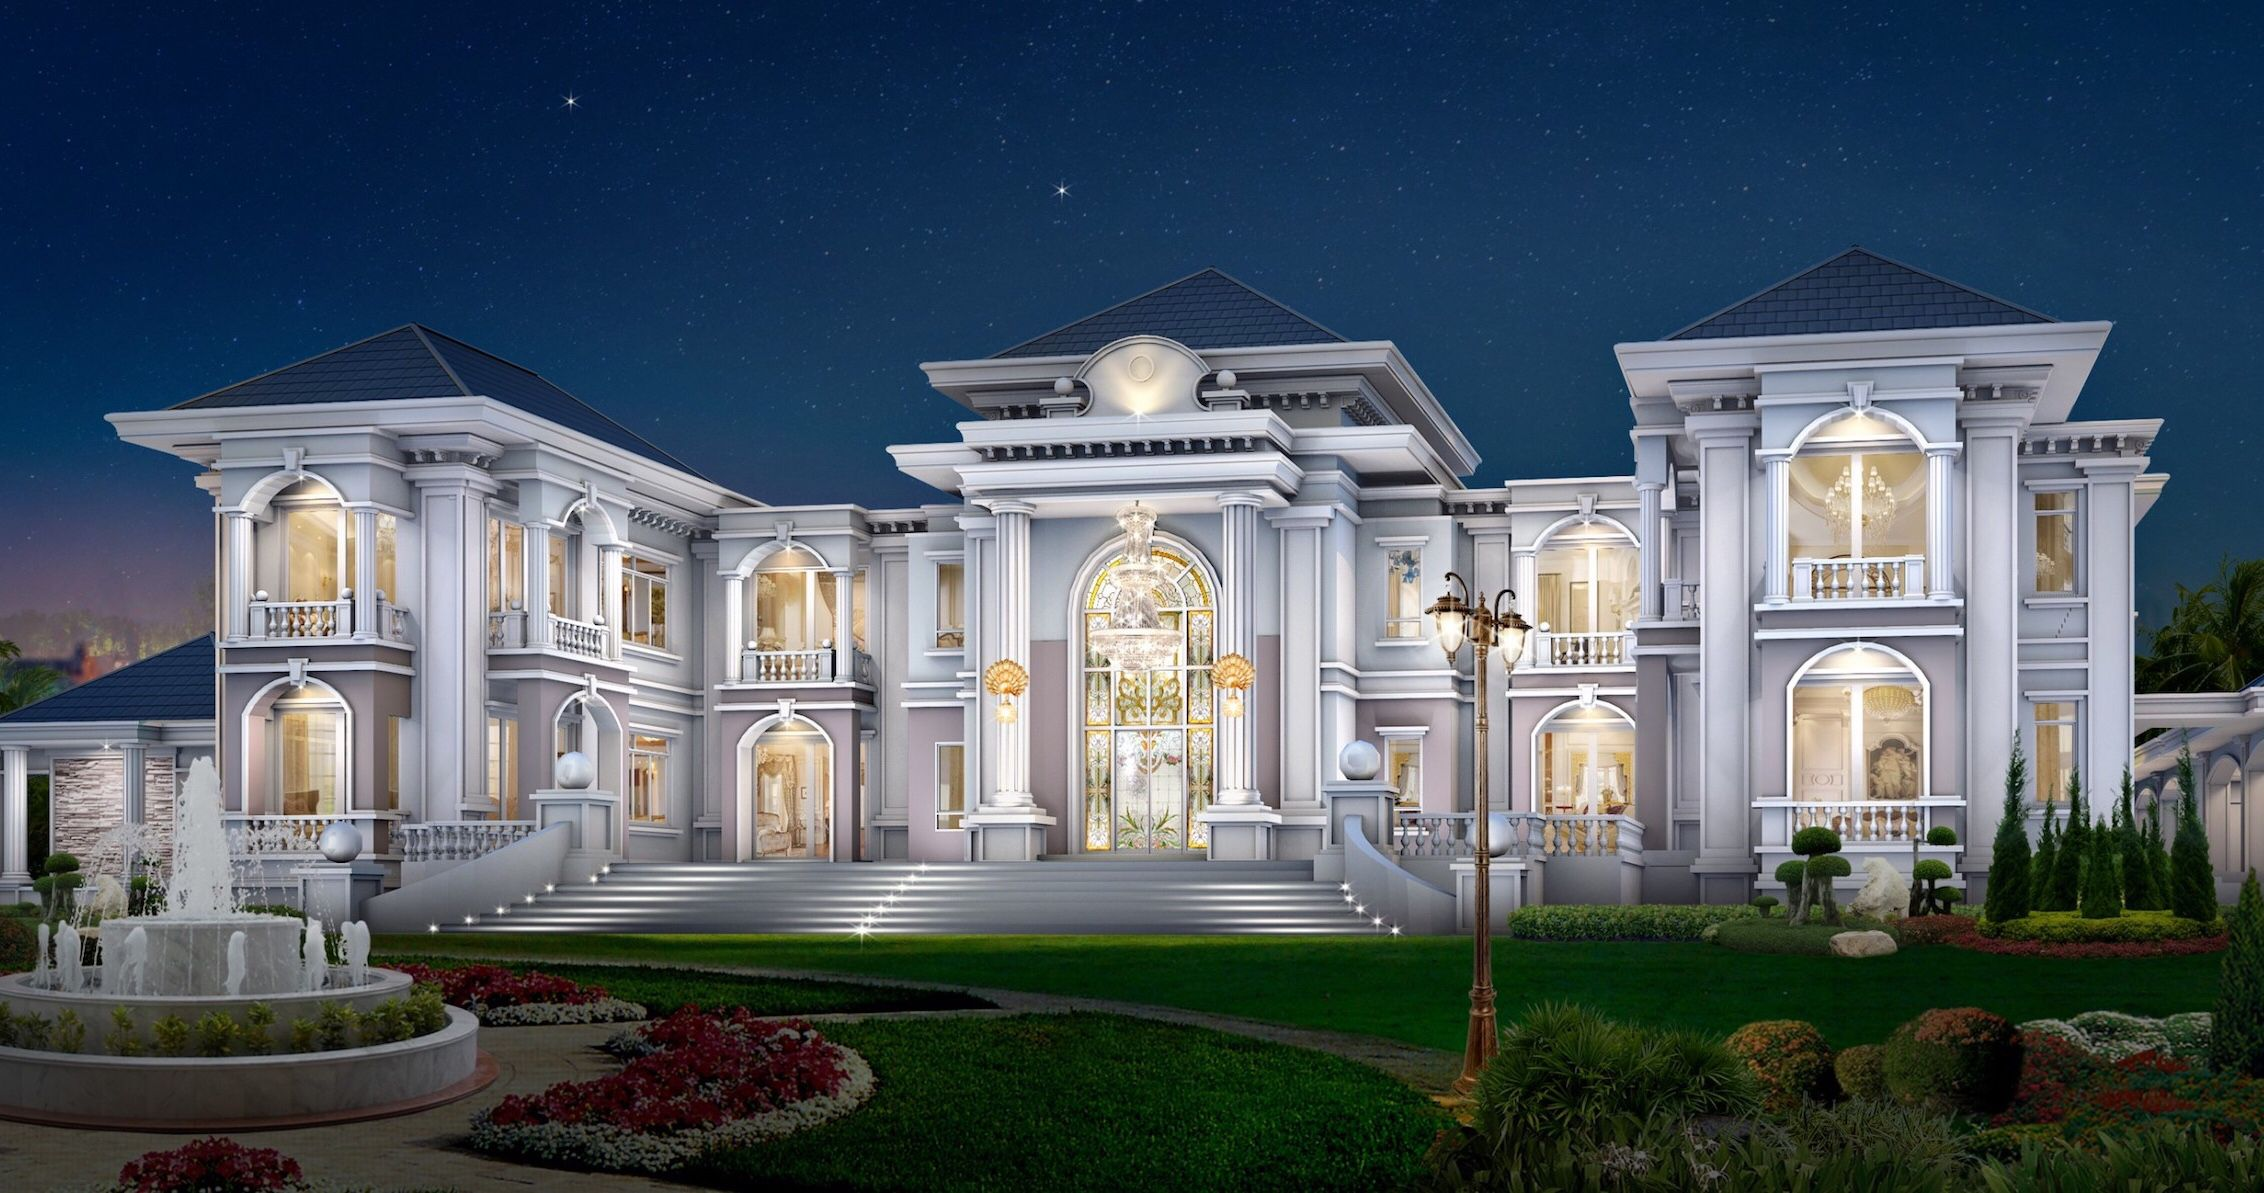 I Think We Got It Luxury Homes Dream Houses House Designs Exterior Modern Mansion Interior